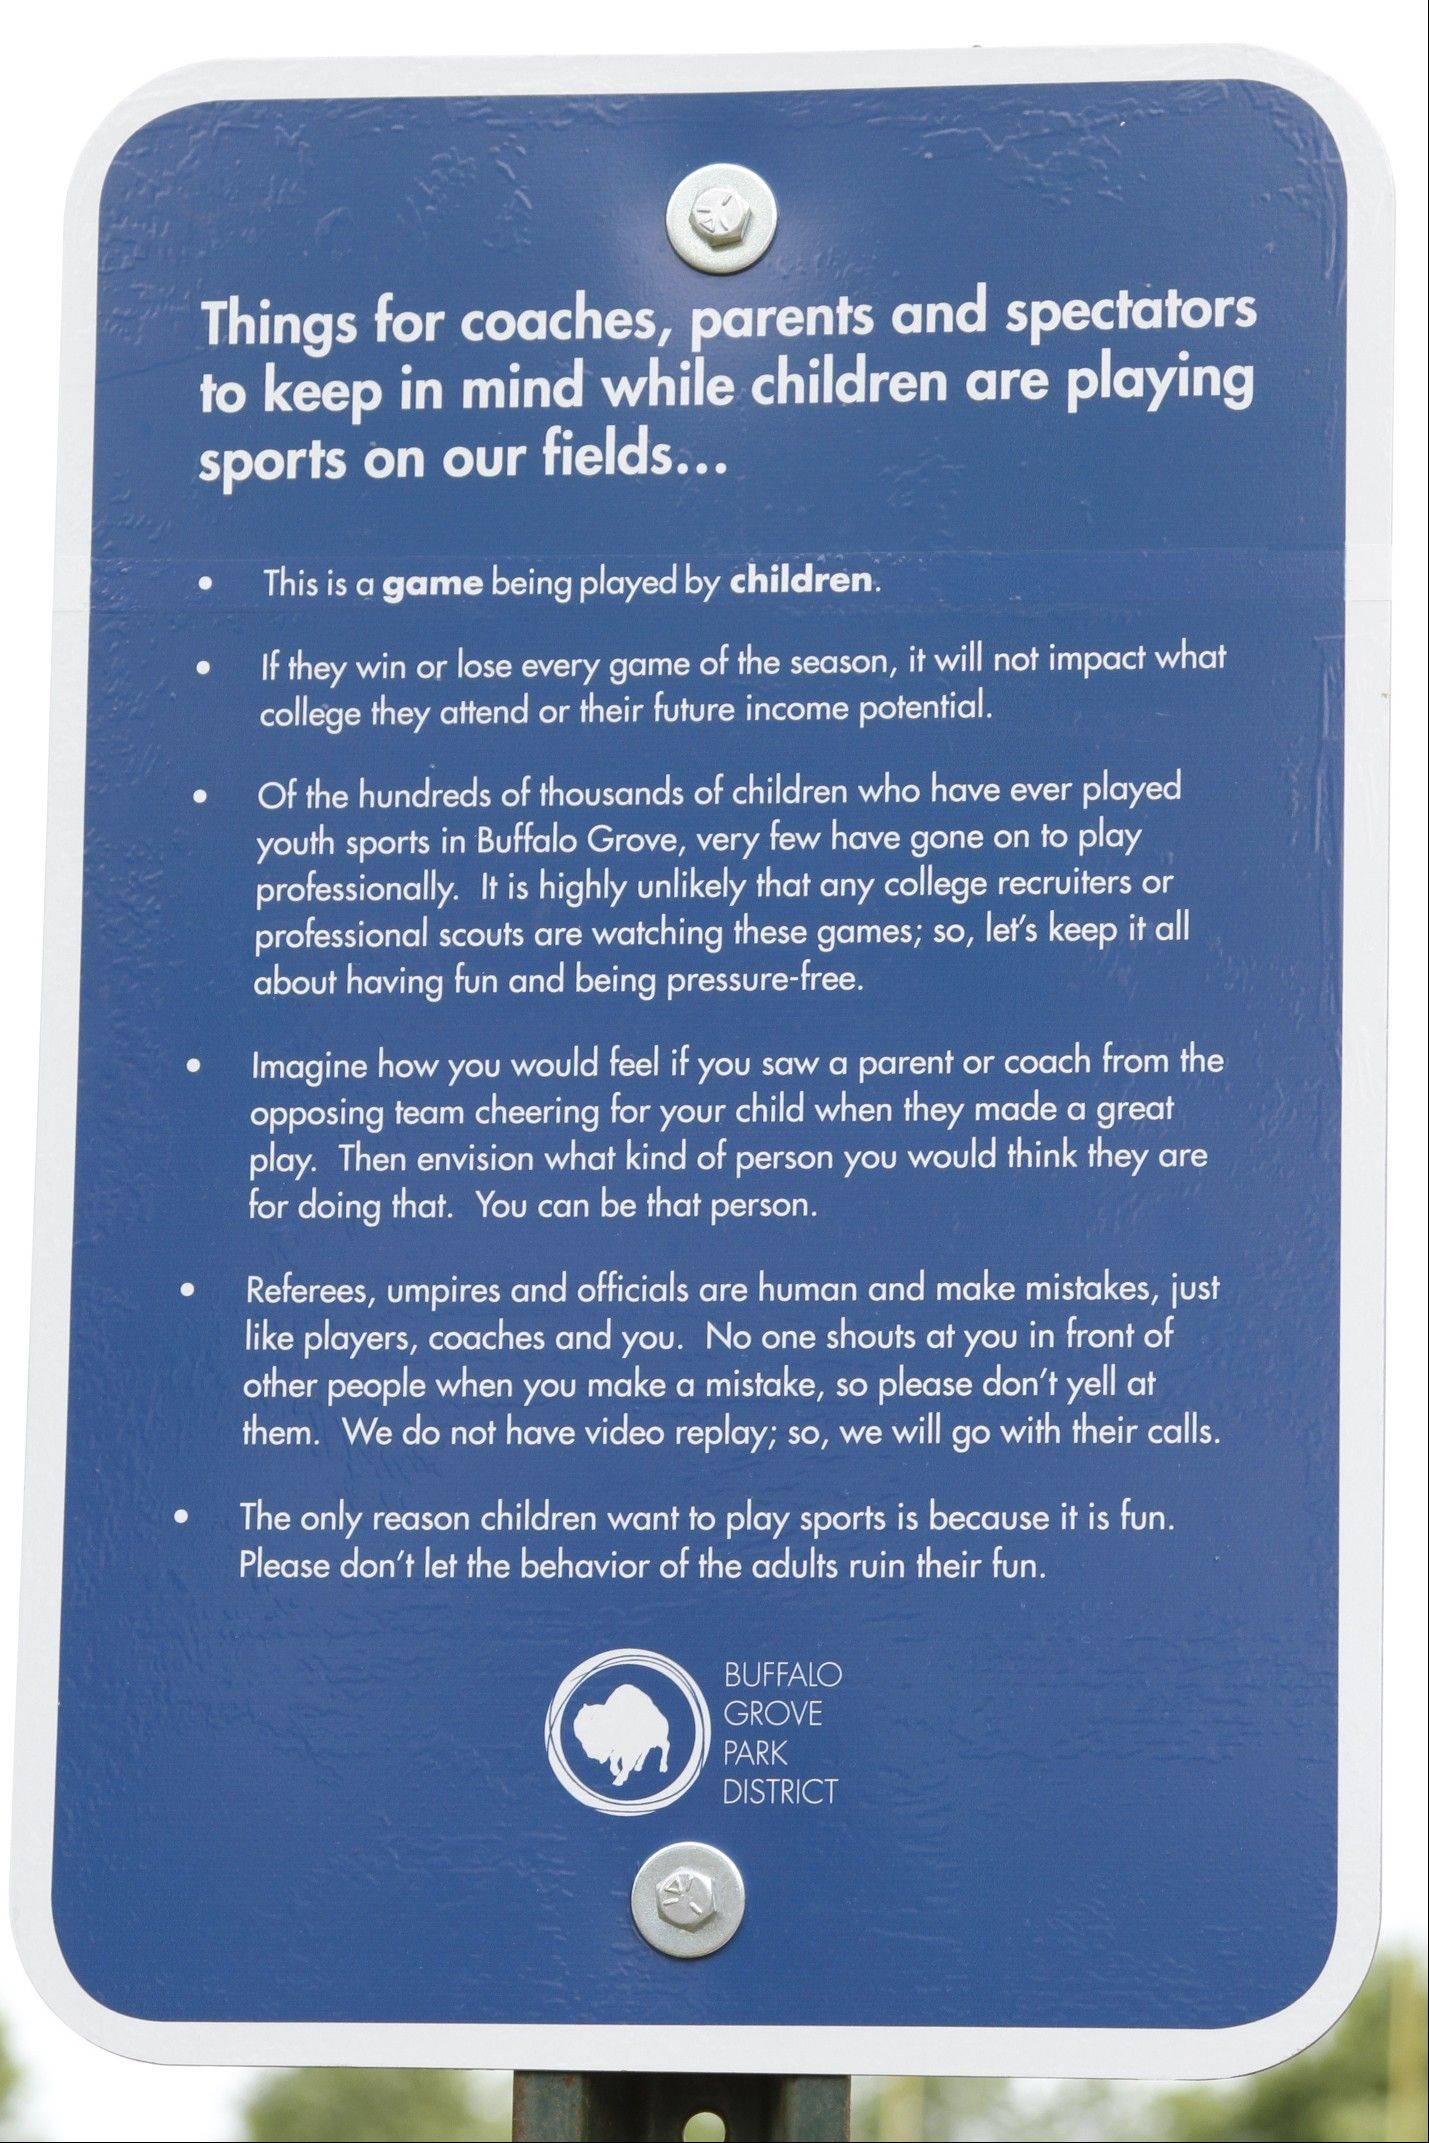 Courtesy Buffalo Grove Park DistrictThis is one of the signs being put up by the Buffalo Grove Park District to discourage inappropriate adult behavior at sporting events.